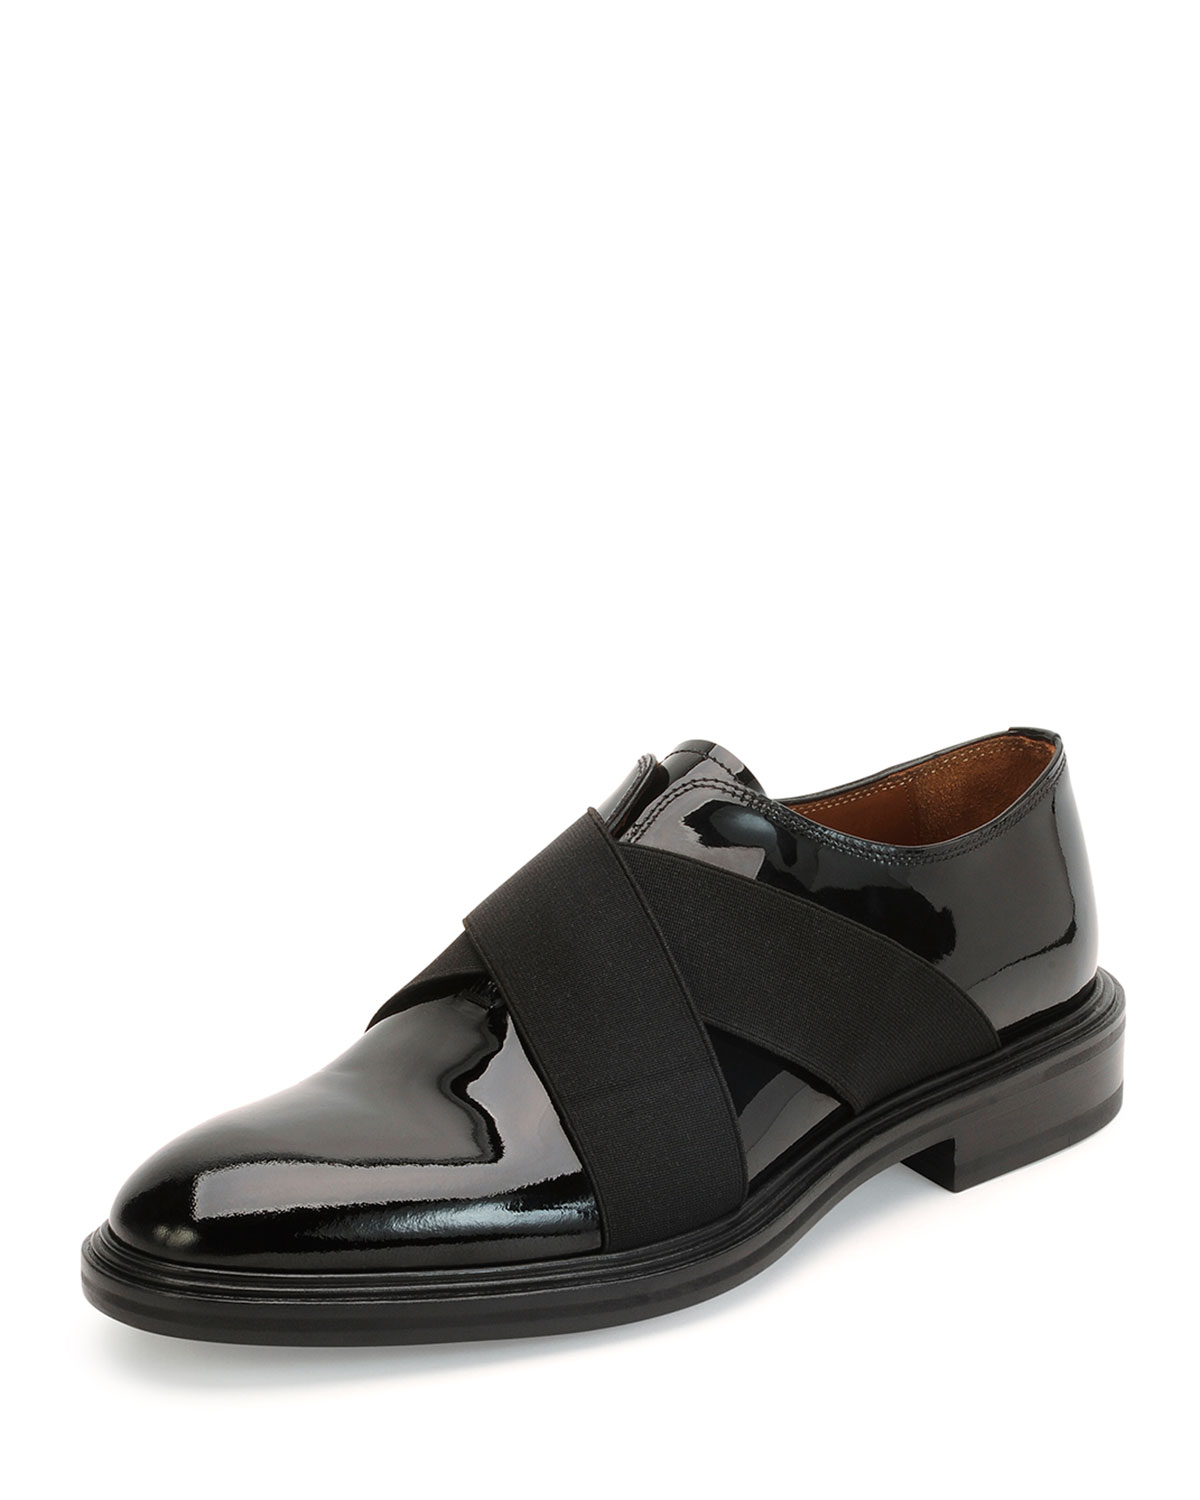 Givenchy Shoes Womens